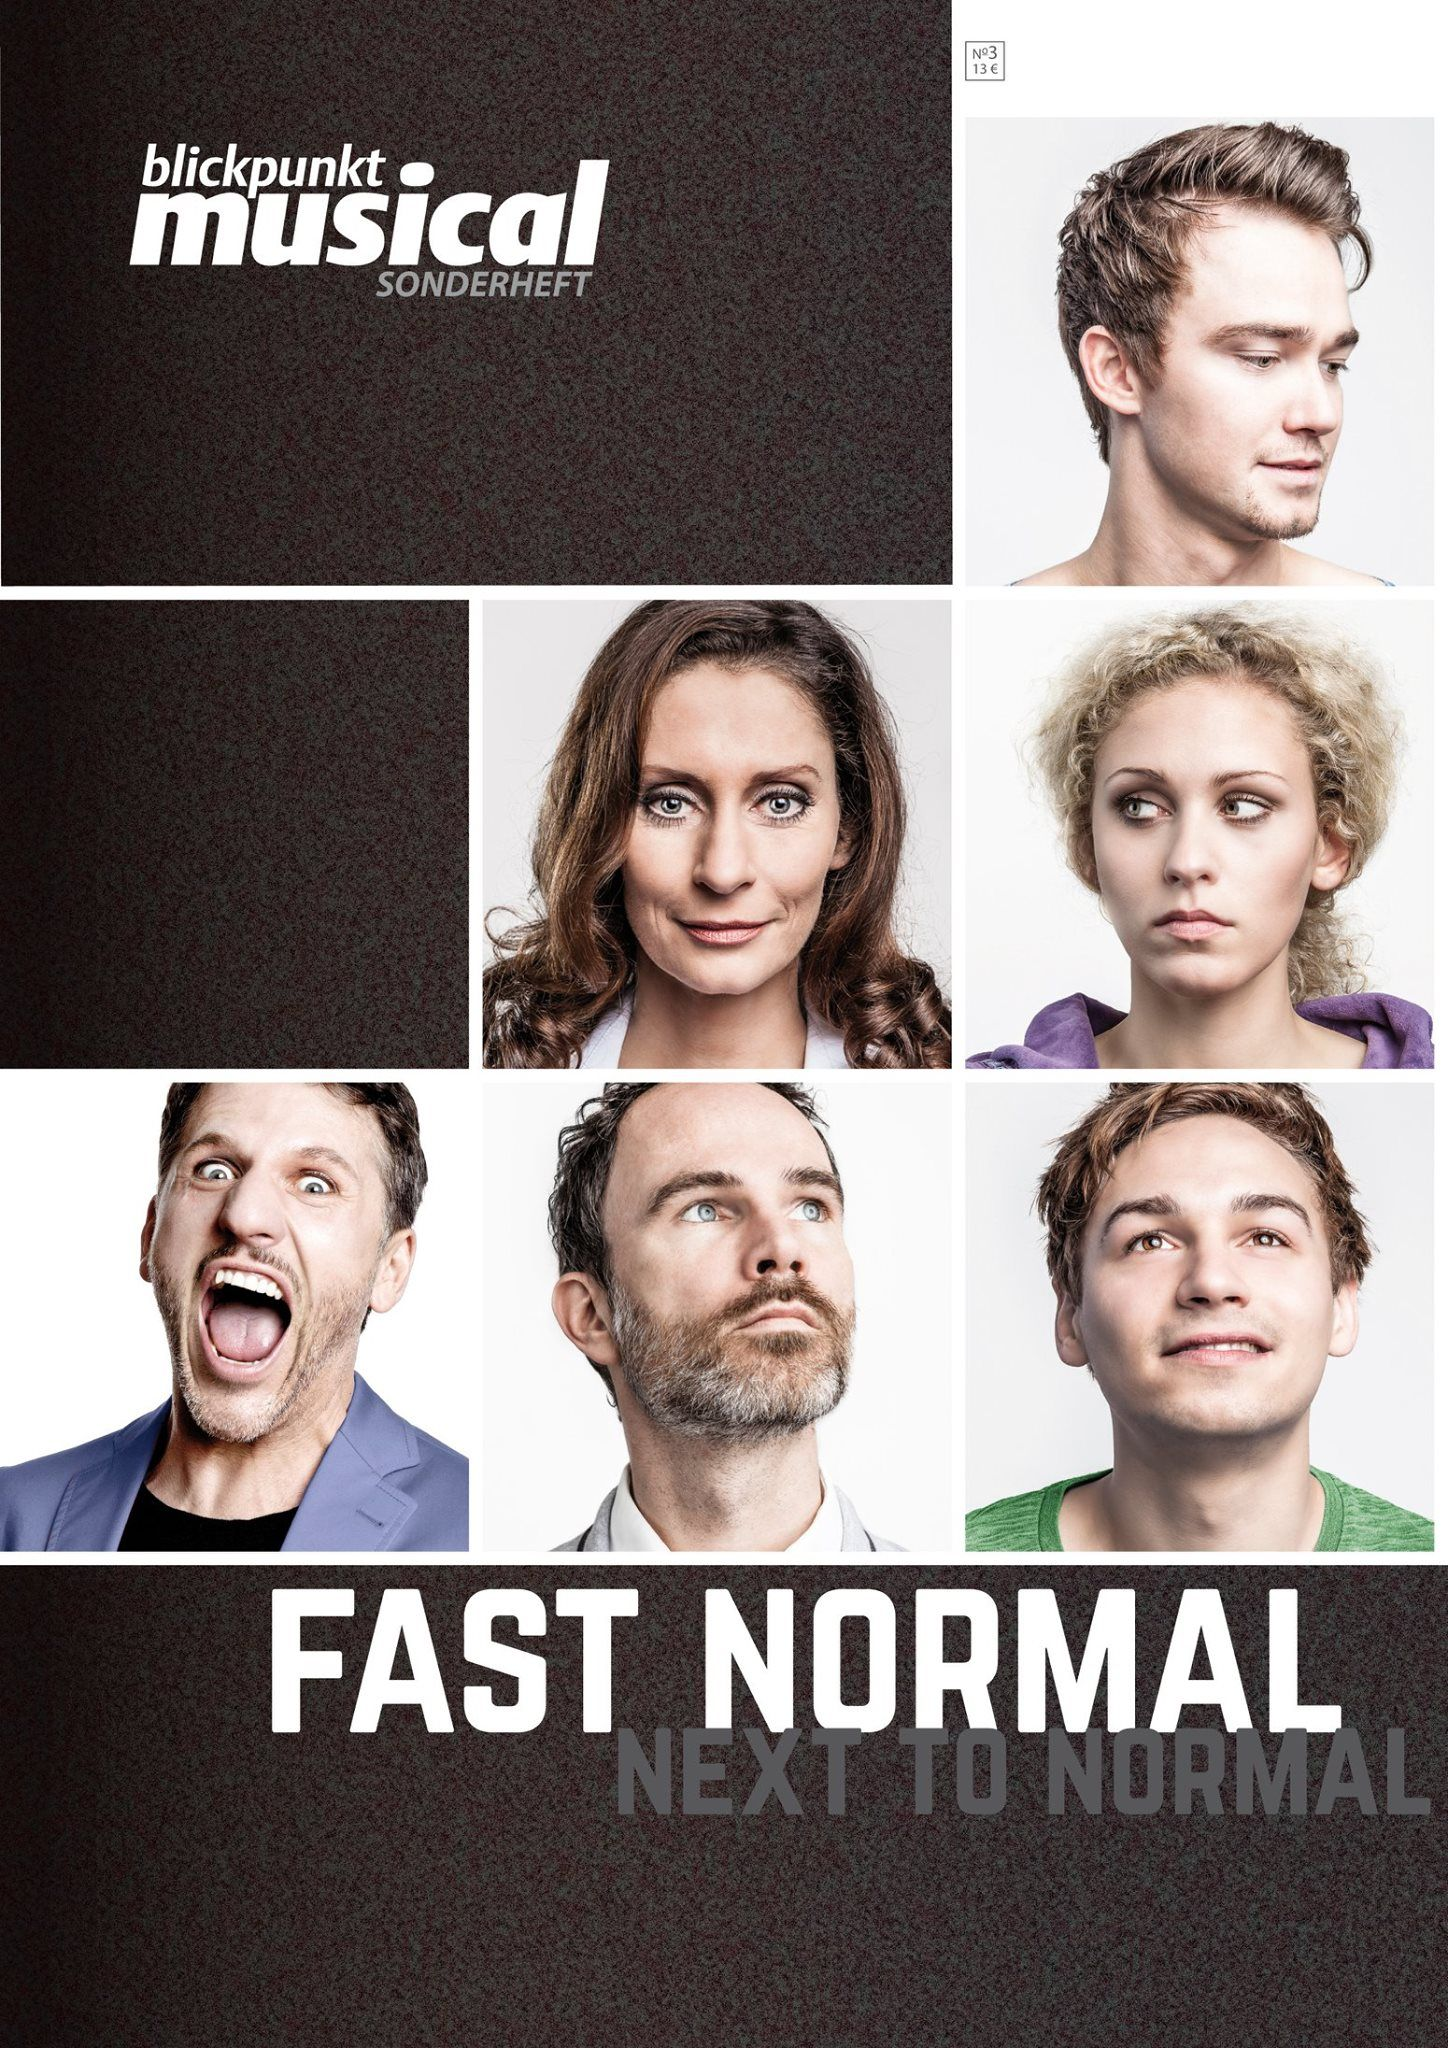 Fast normal german Next to normal Next to Normal